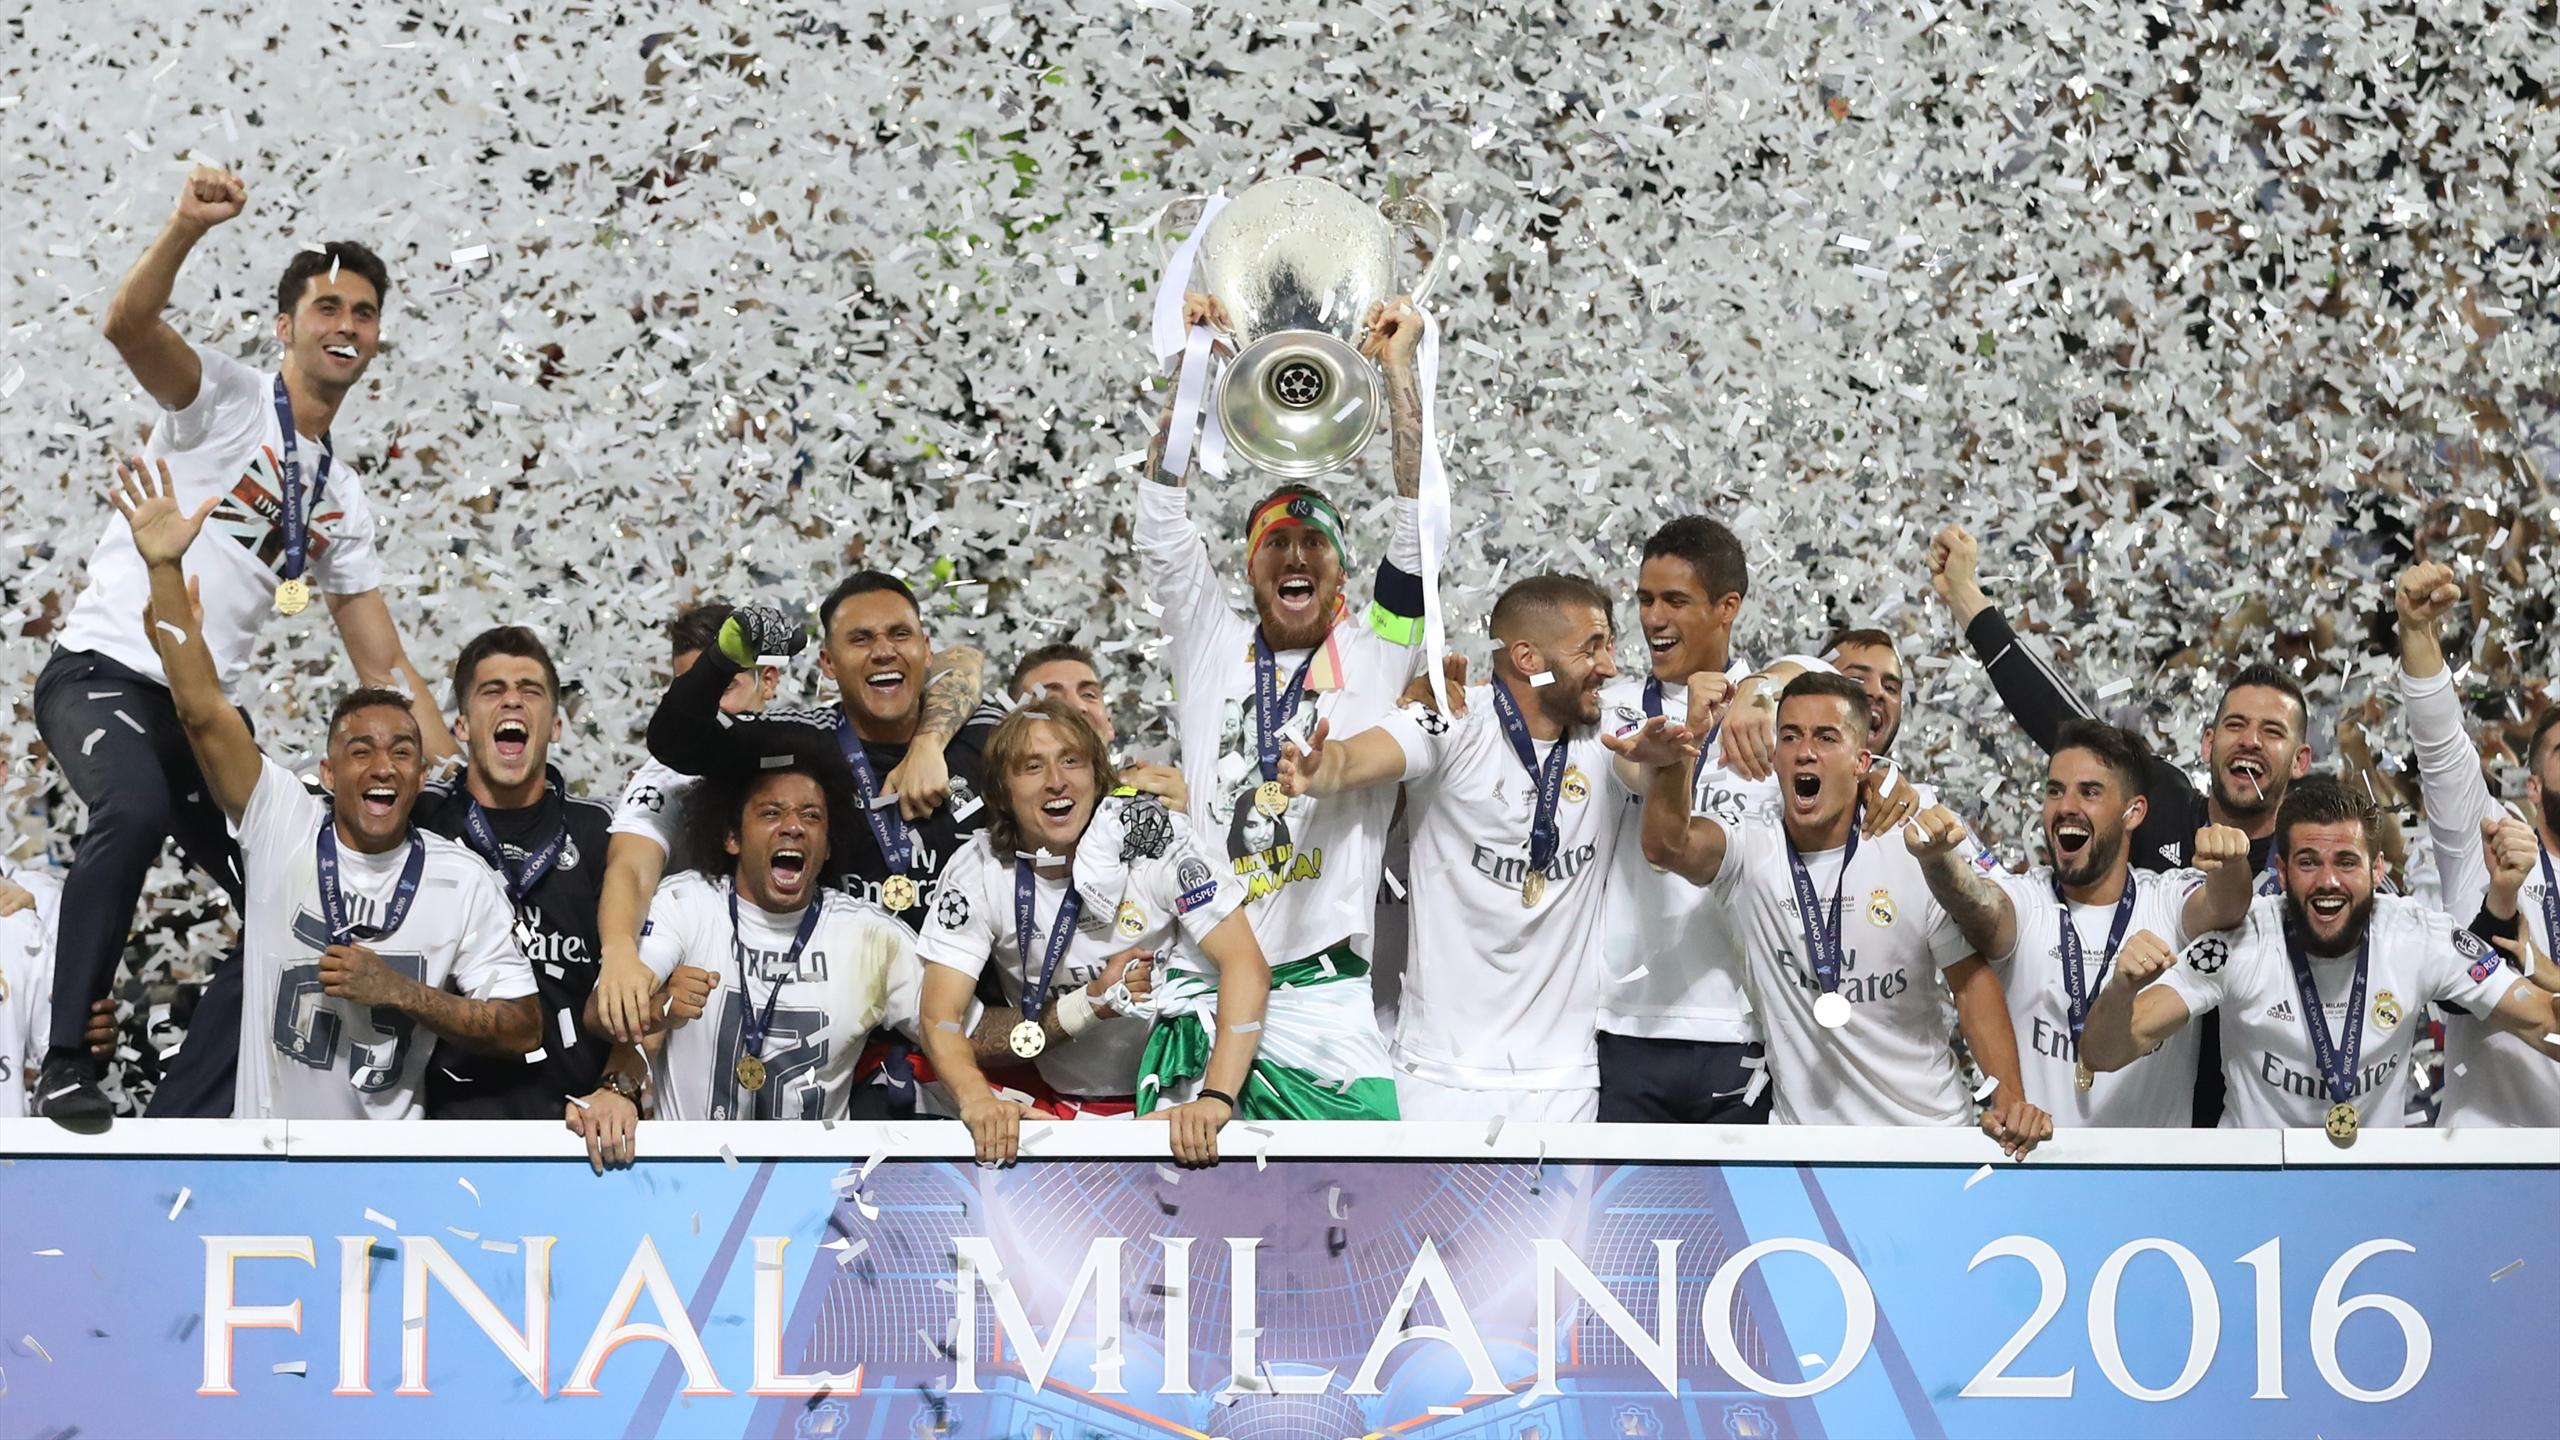 Real Madrid Were Crowned Champions Of Europe For The 11th Time After Beating Atletico In A Dramatic Penalty Shootout Milan